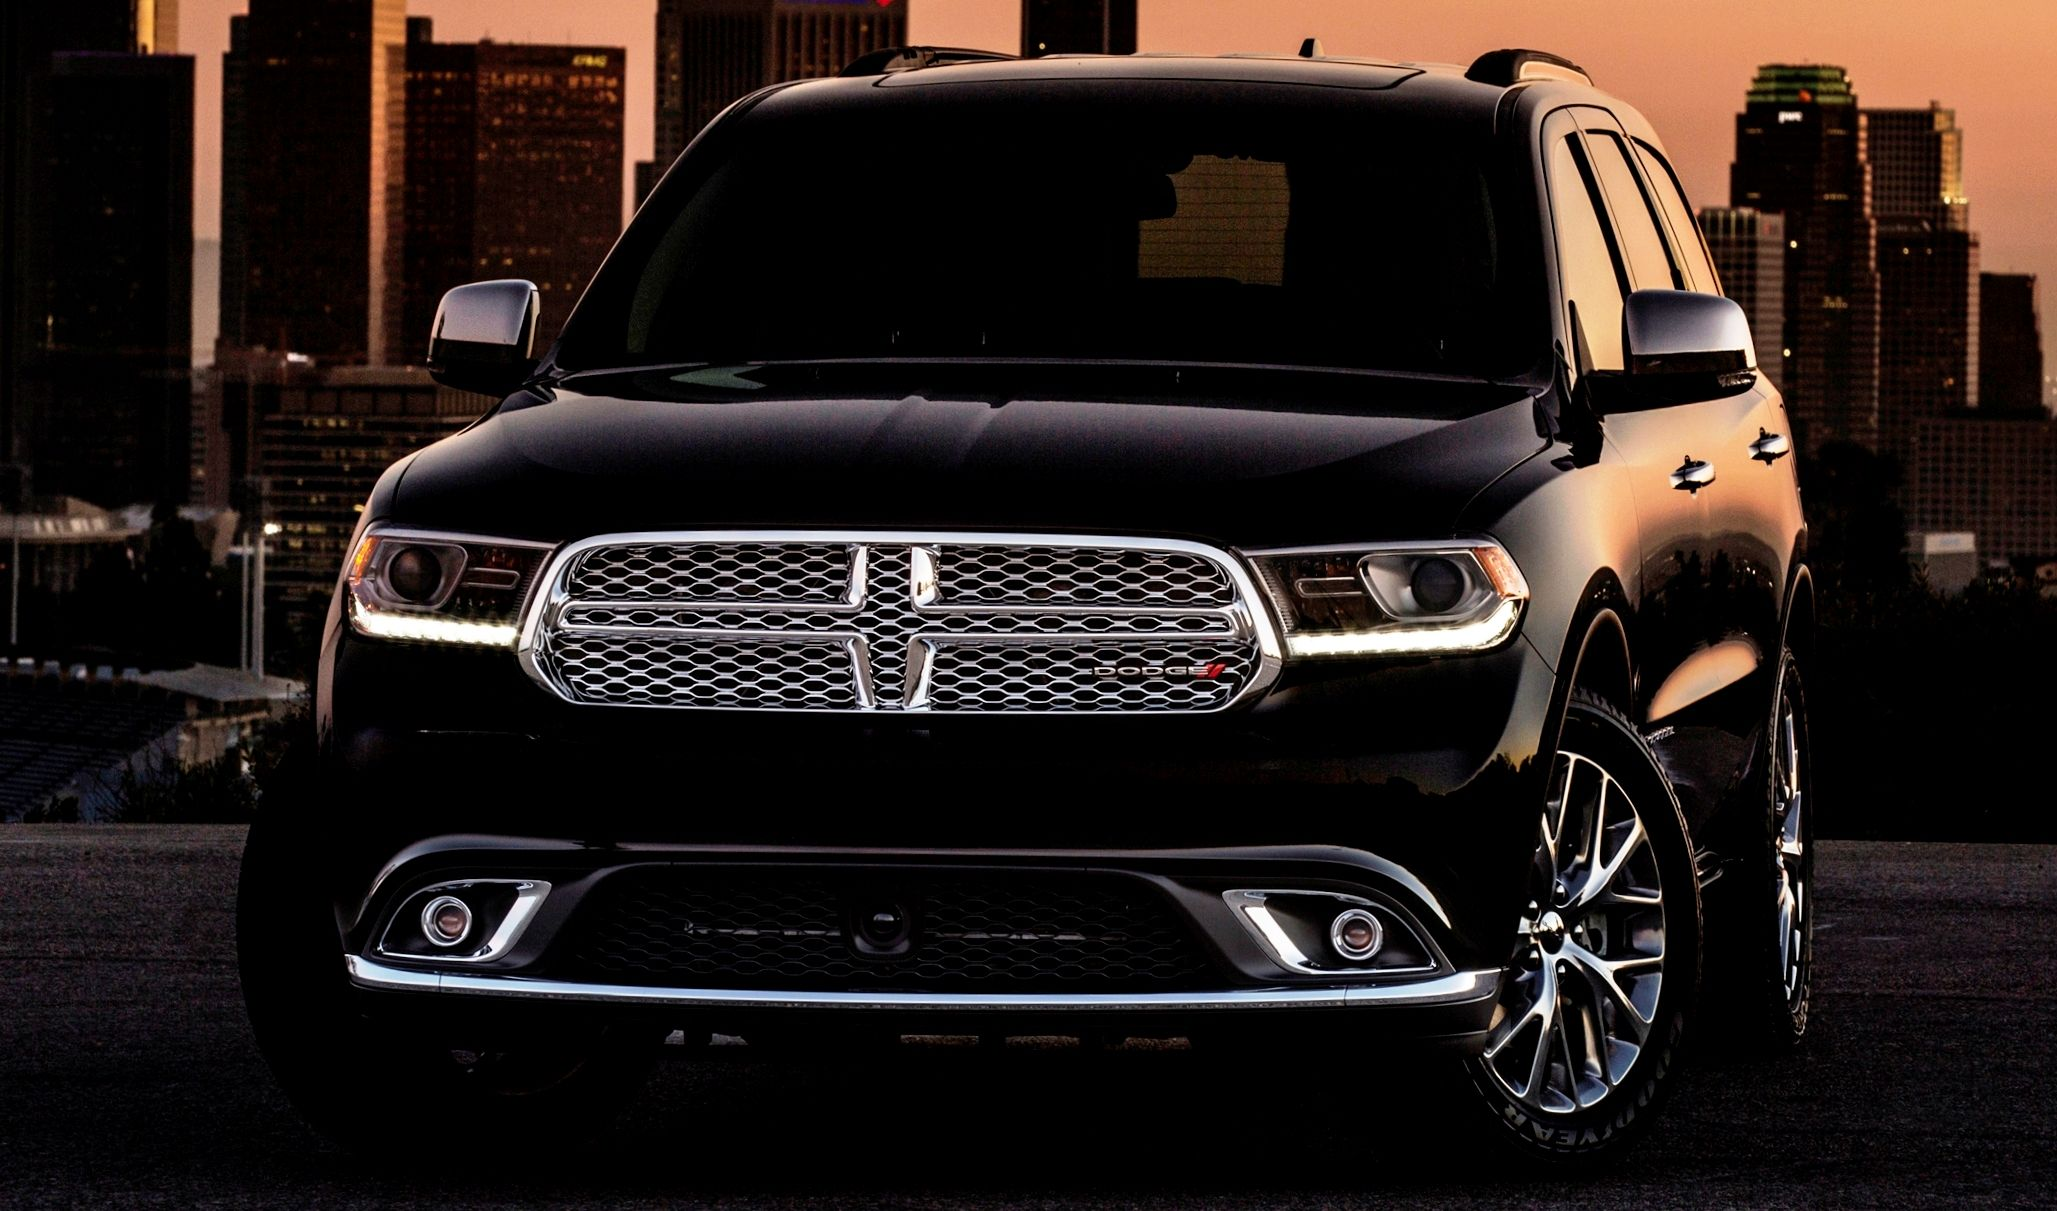 Best of Awards  Coolest SUV Stance  Dodge Durango Rallye and